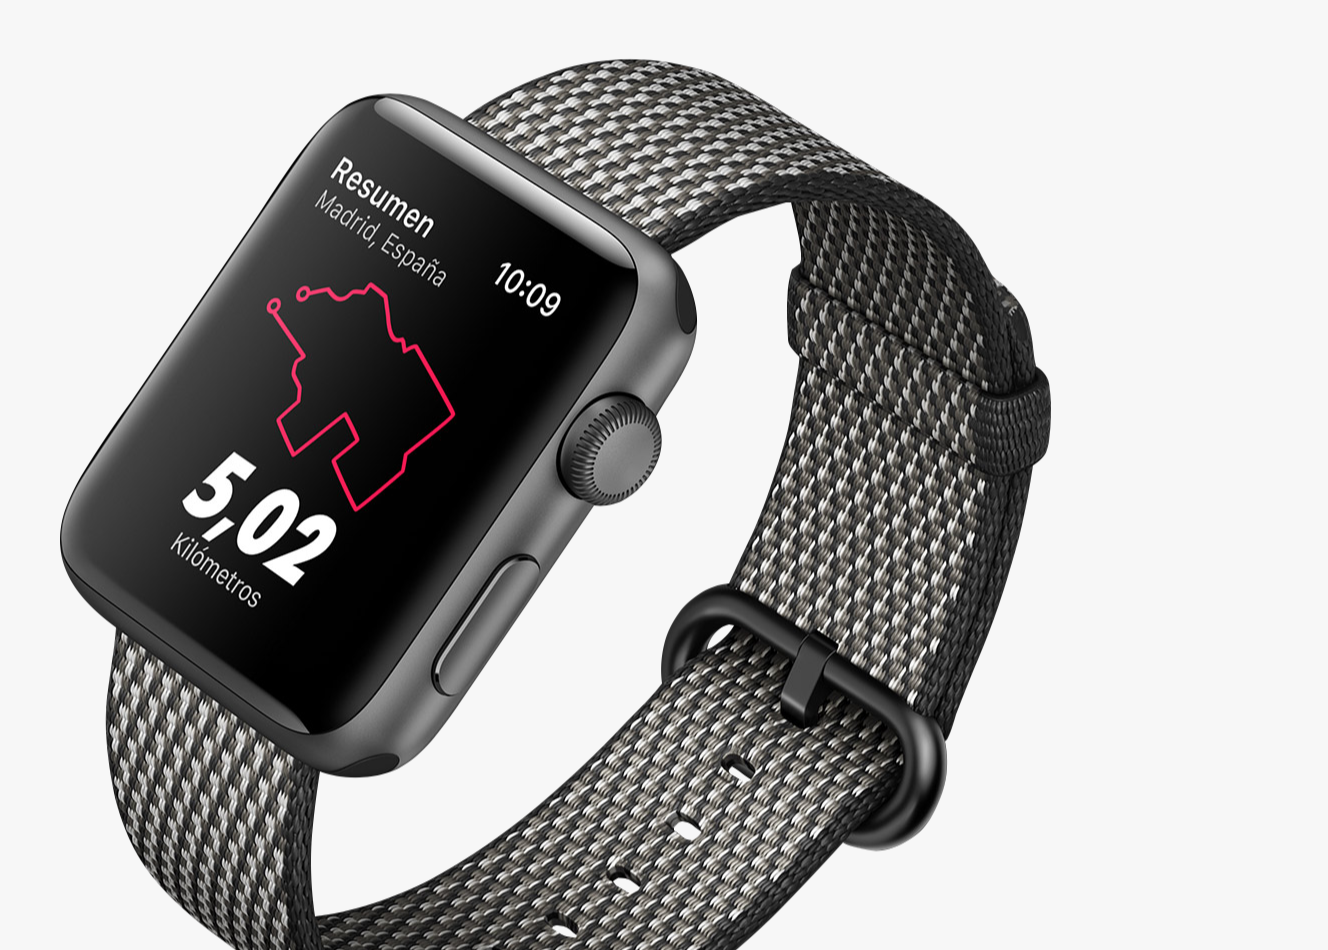 Apple Watch 3 mountain bike